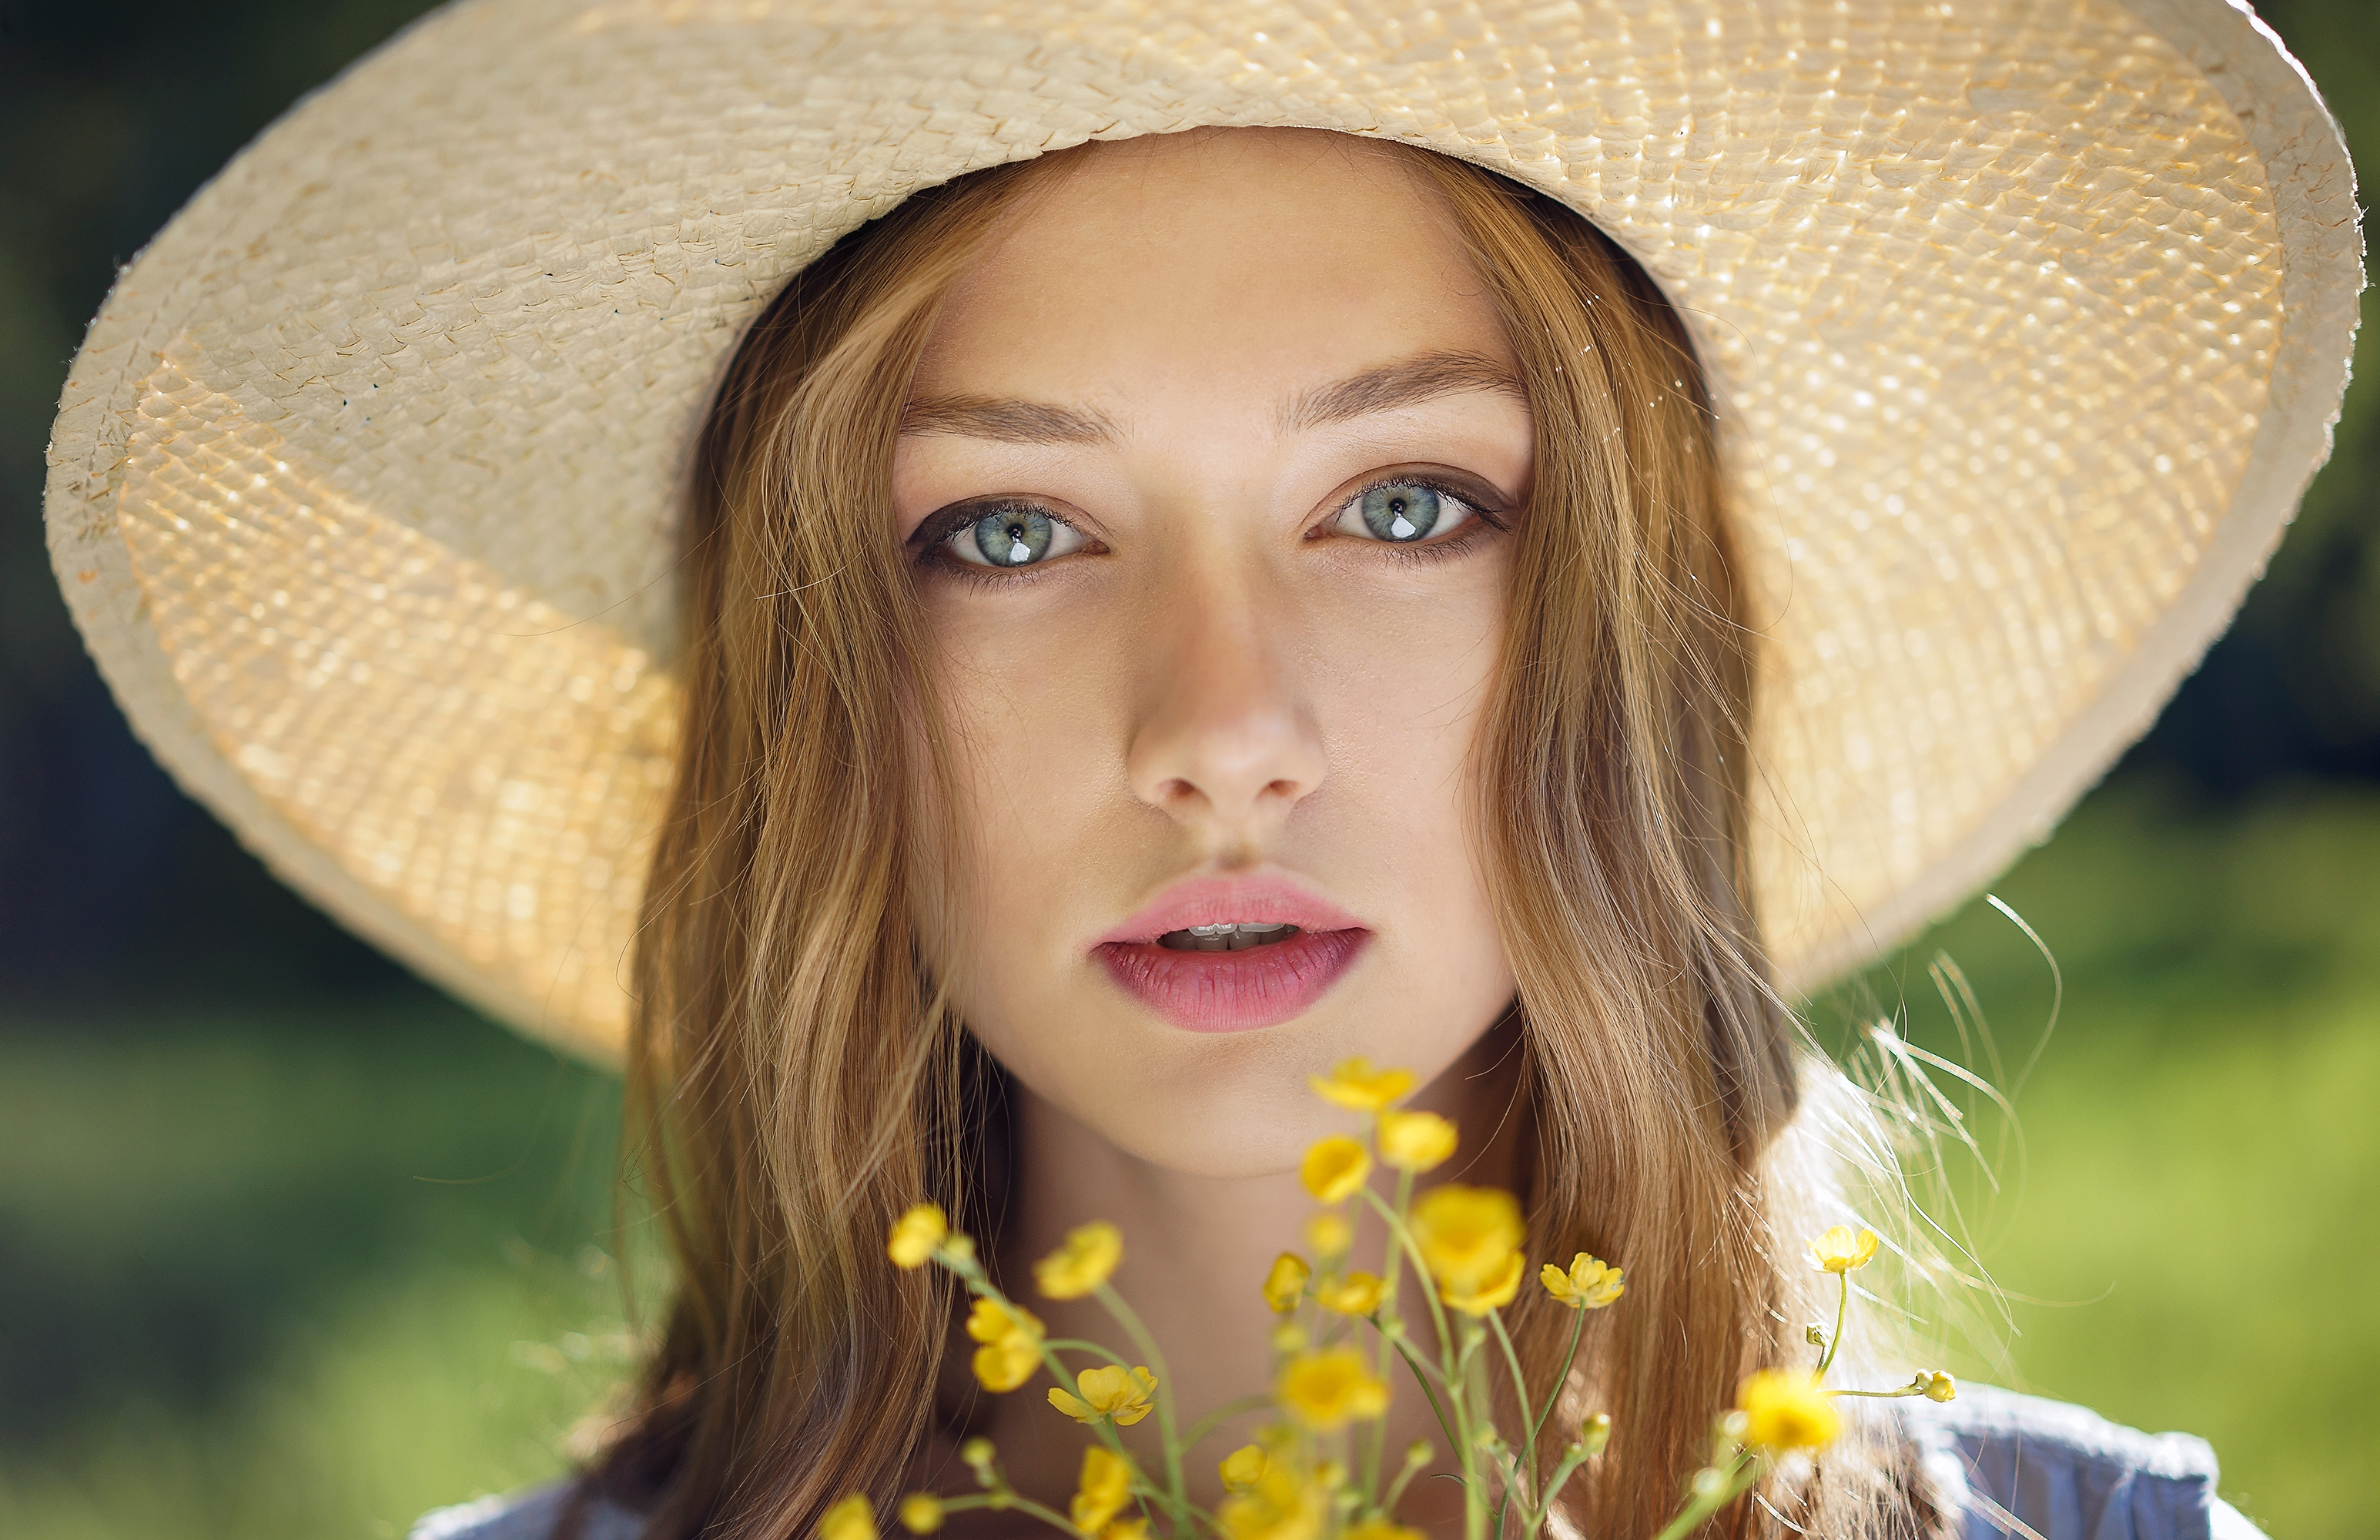 Lighten Up Your Summer Beauty Routine with These Essential Products